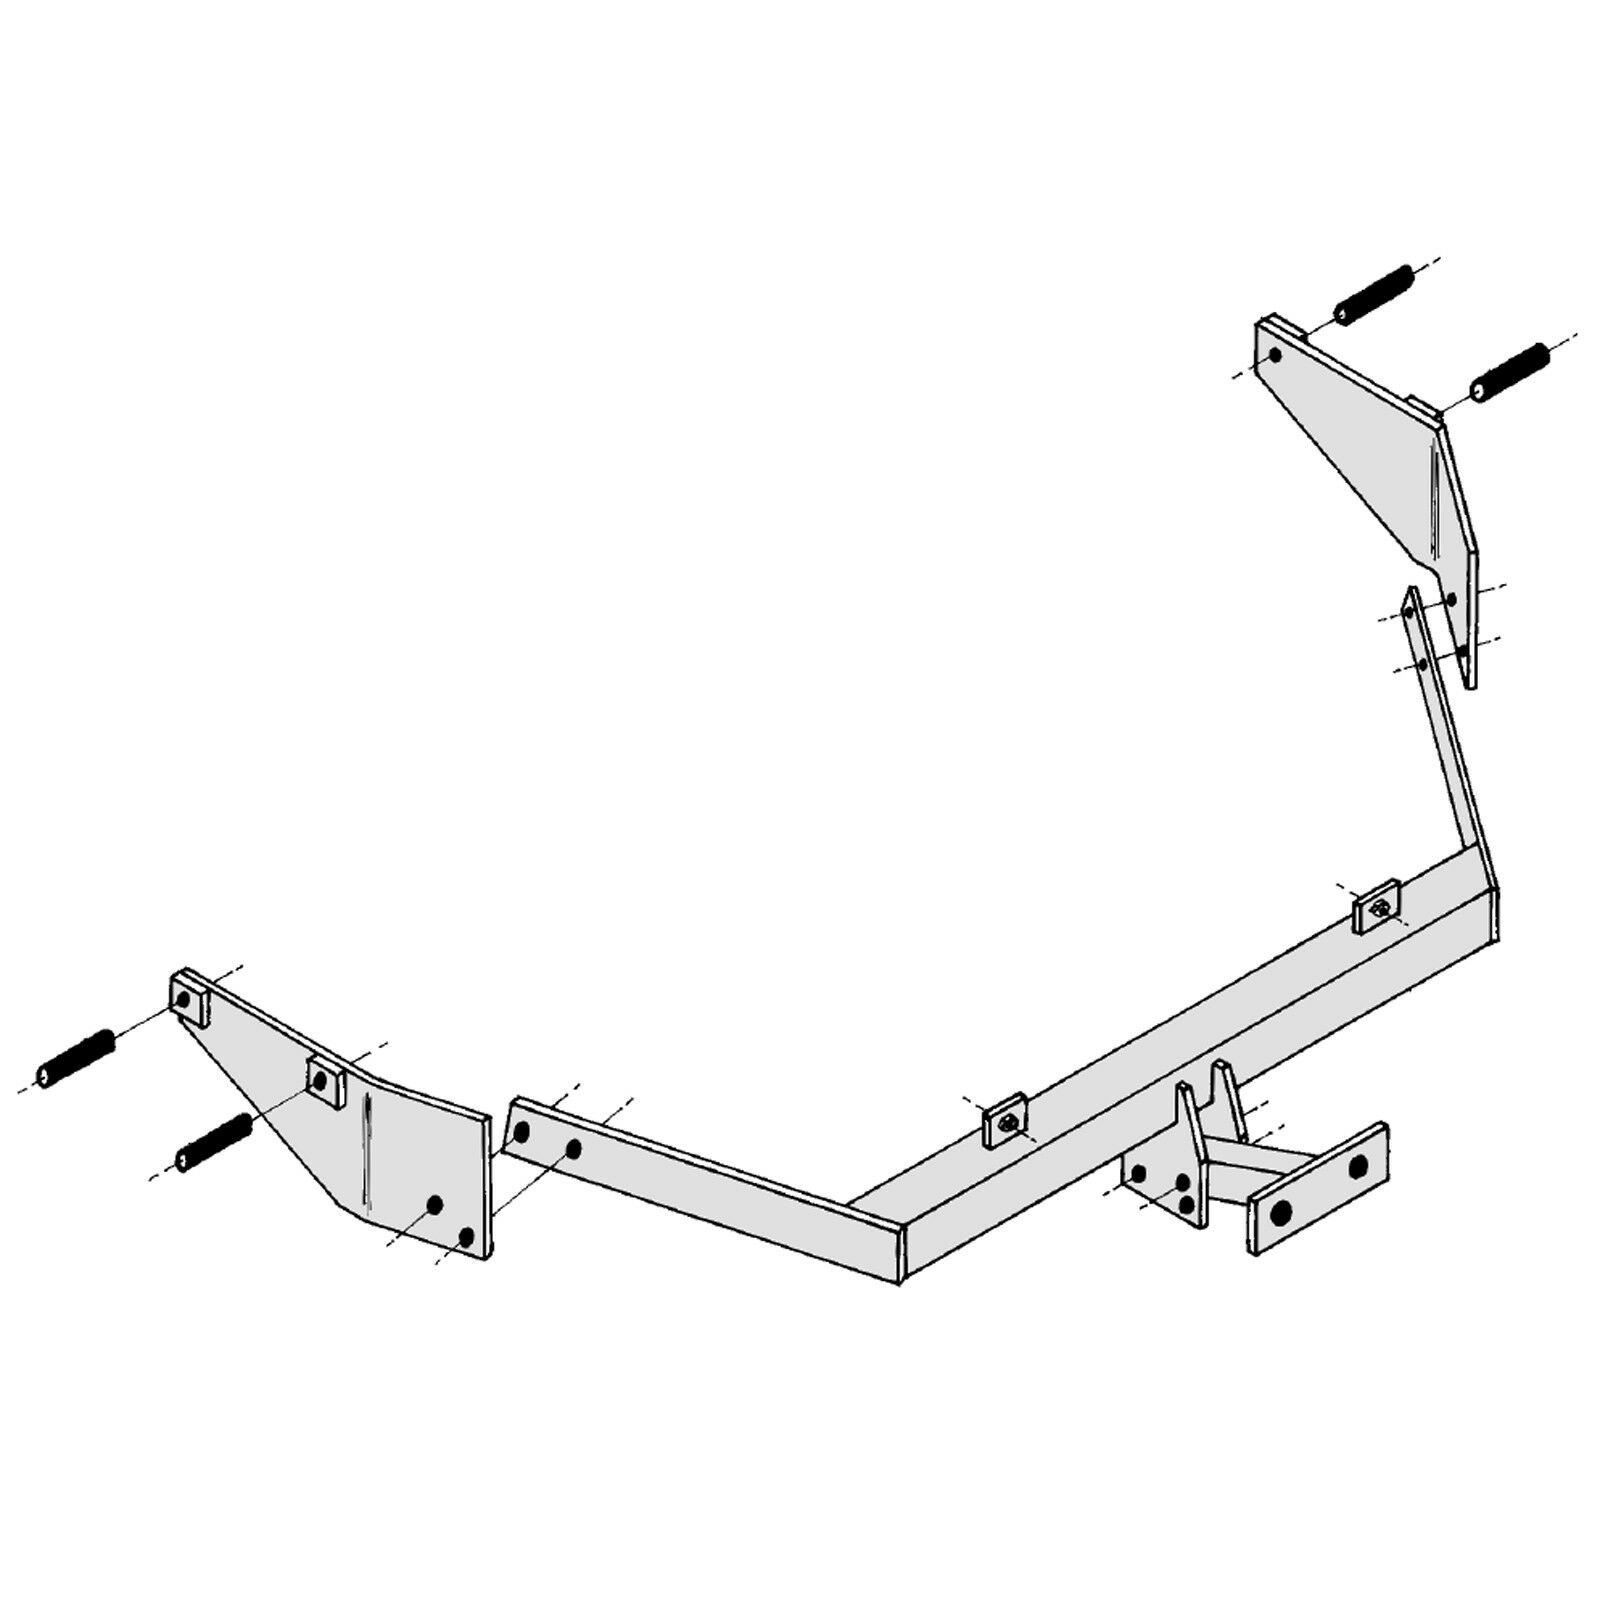 small resolution of details about towbar for citroen berlingo multispace 1998 2008 flange tow bar